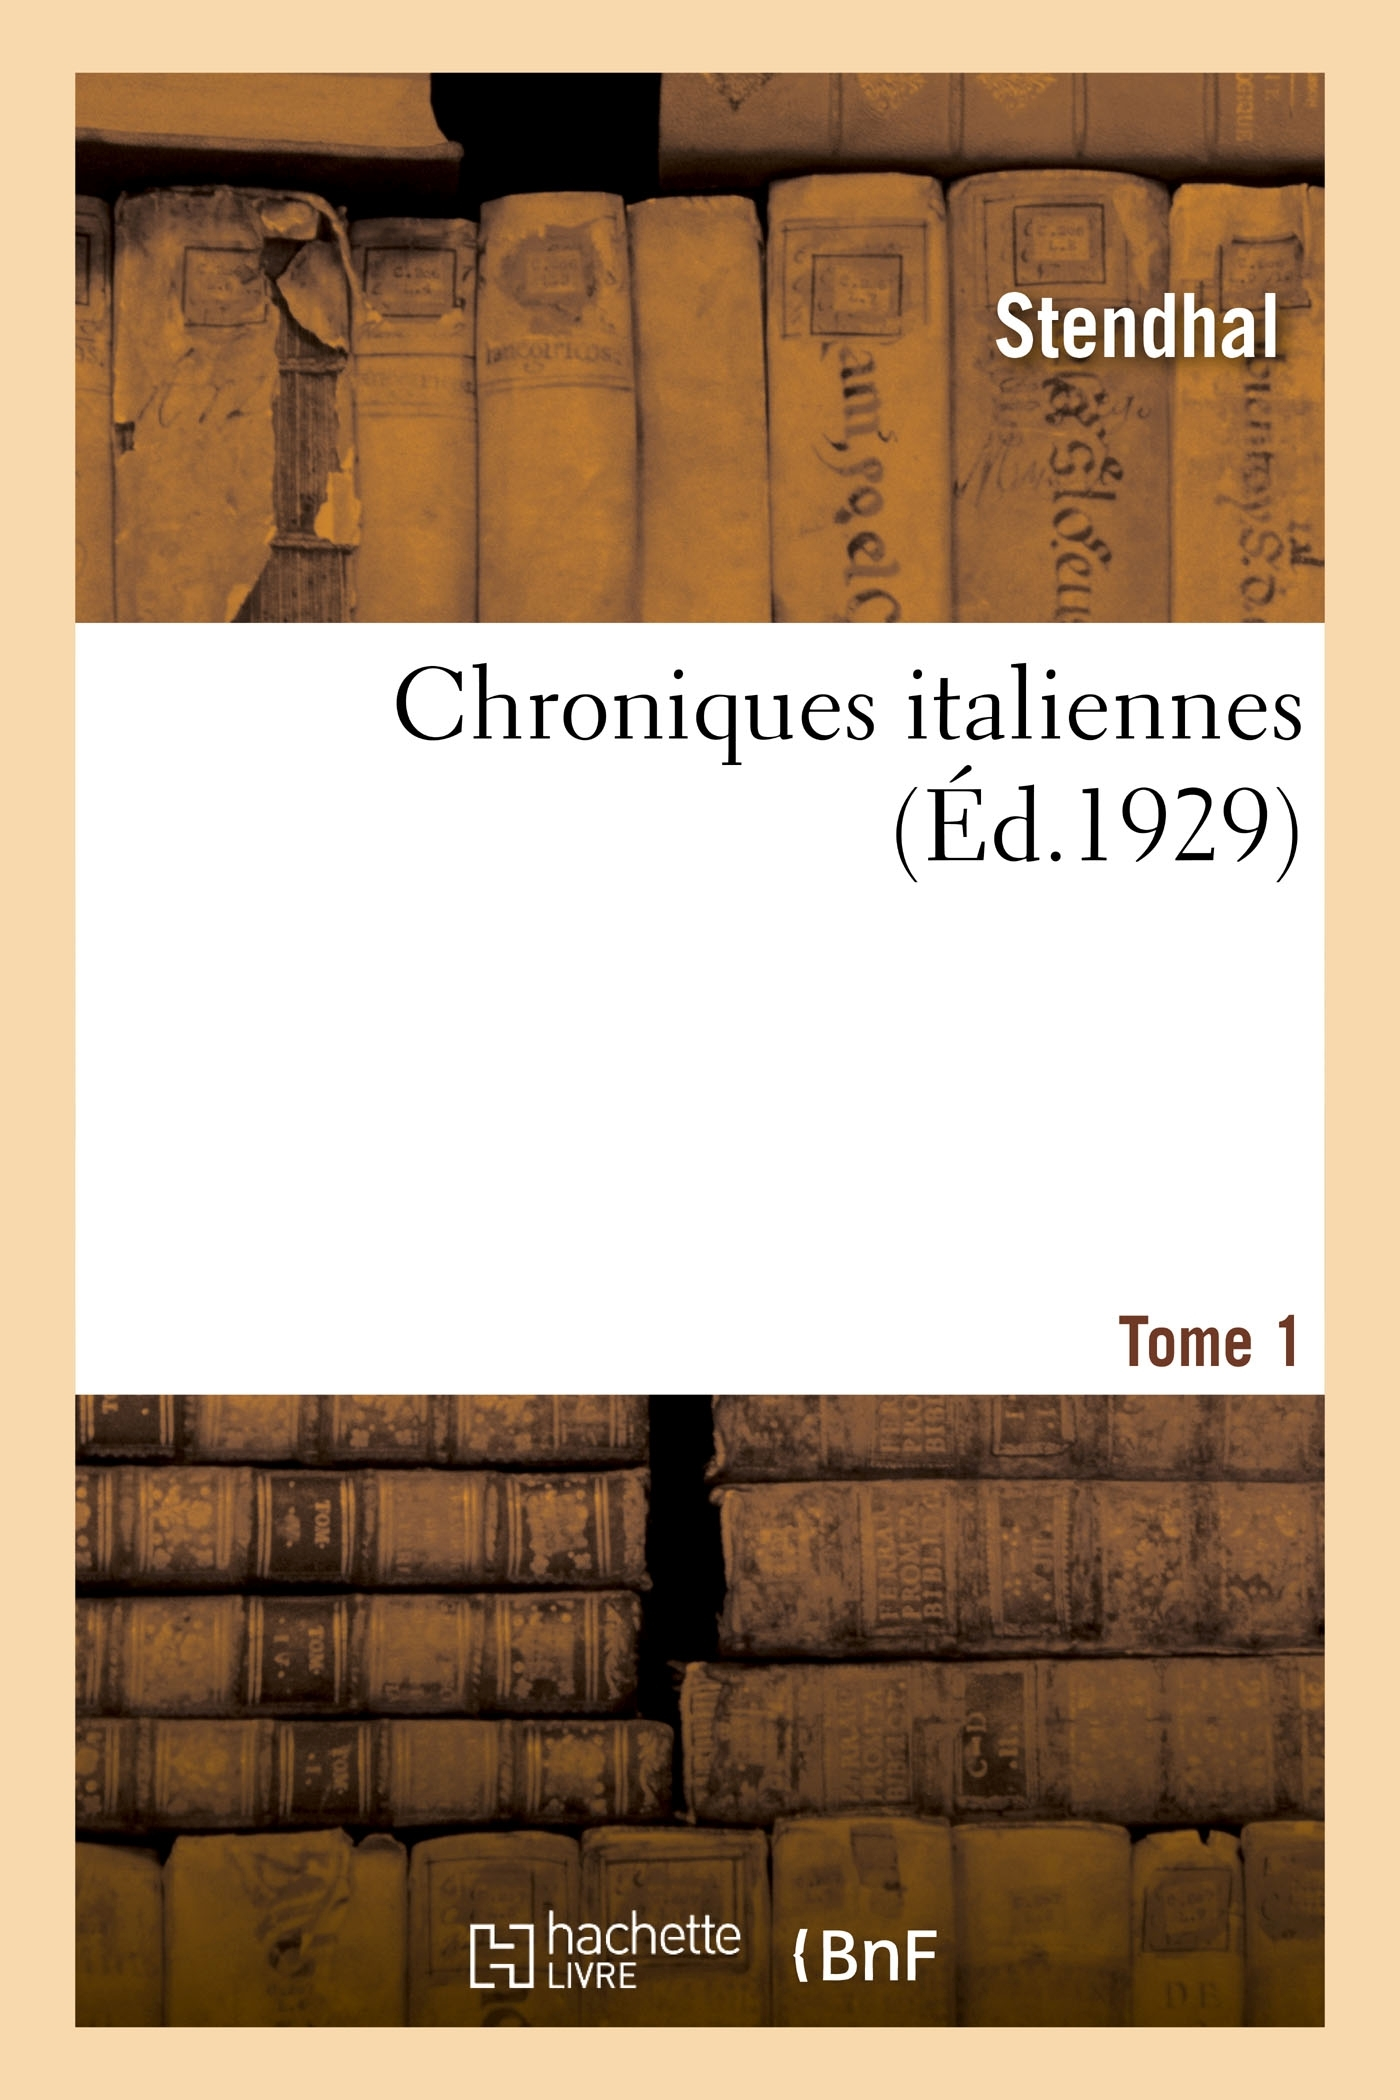 CHRONIQUES ITALIENNES. TOME 1